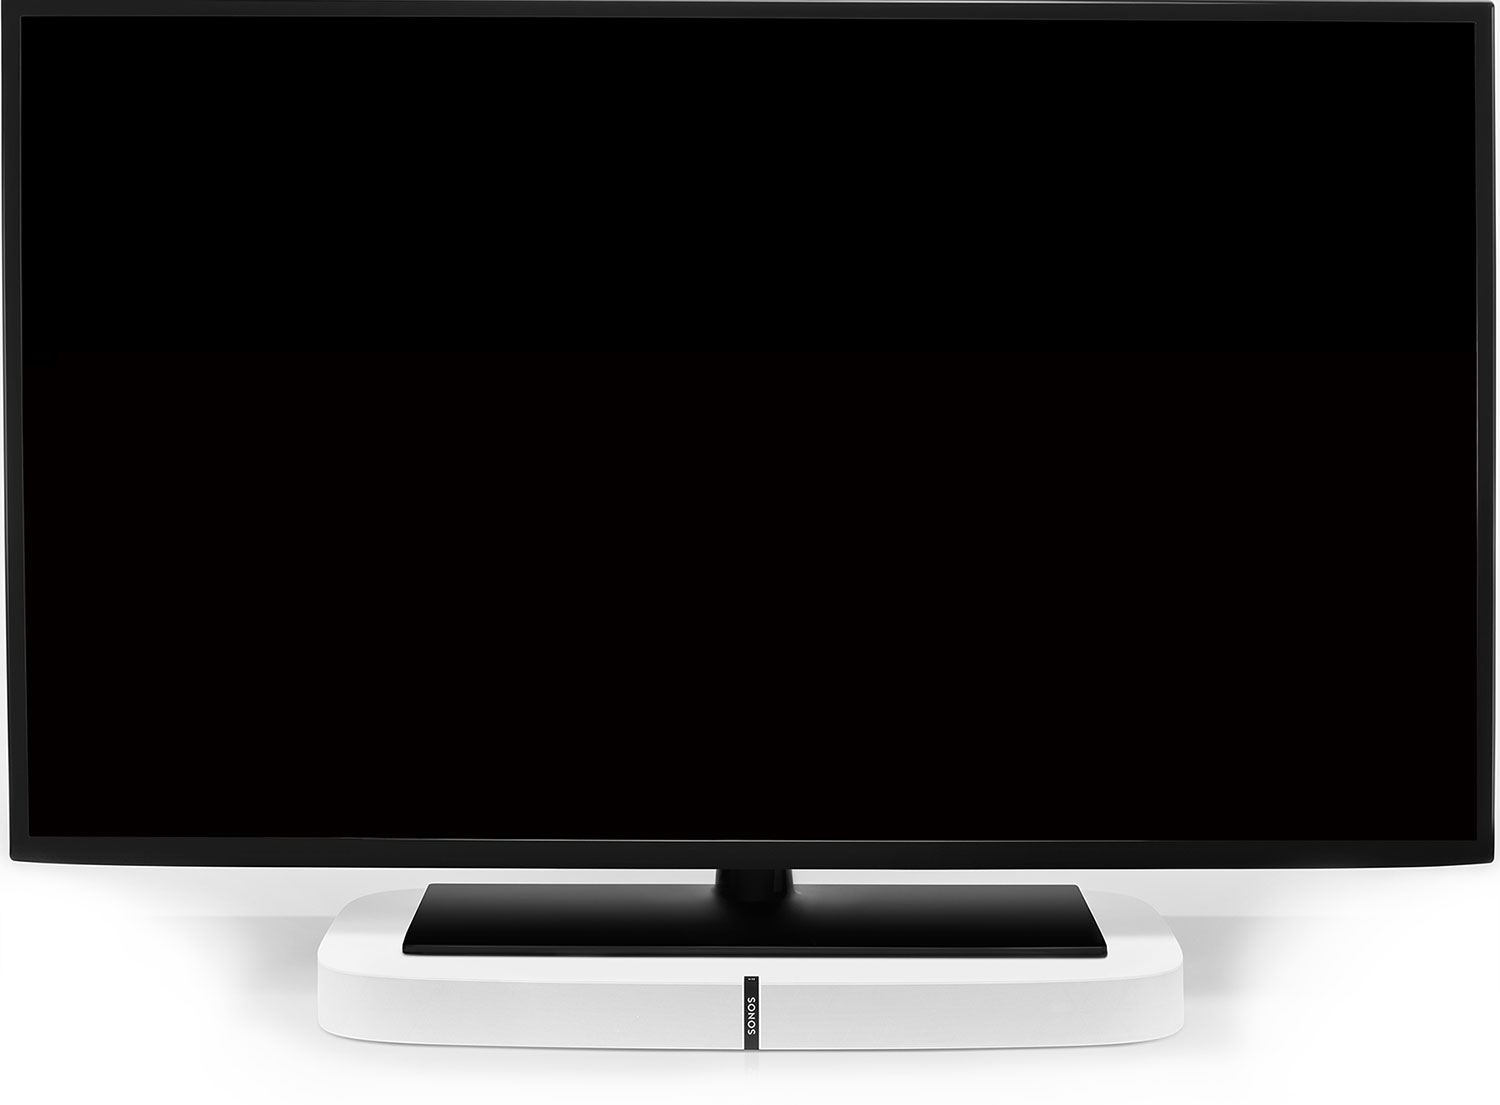 White Playbase supporting a TV